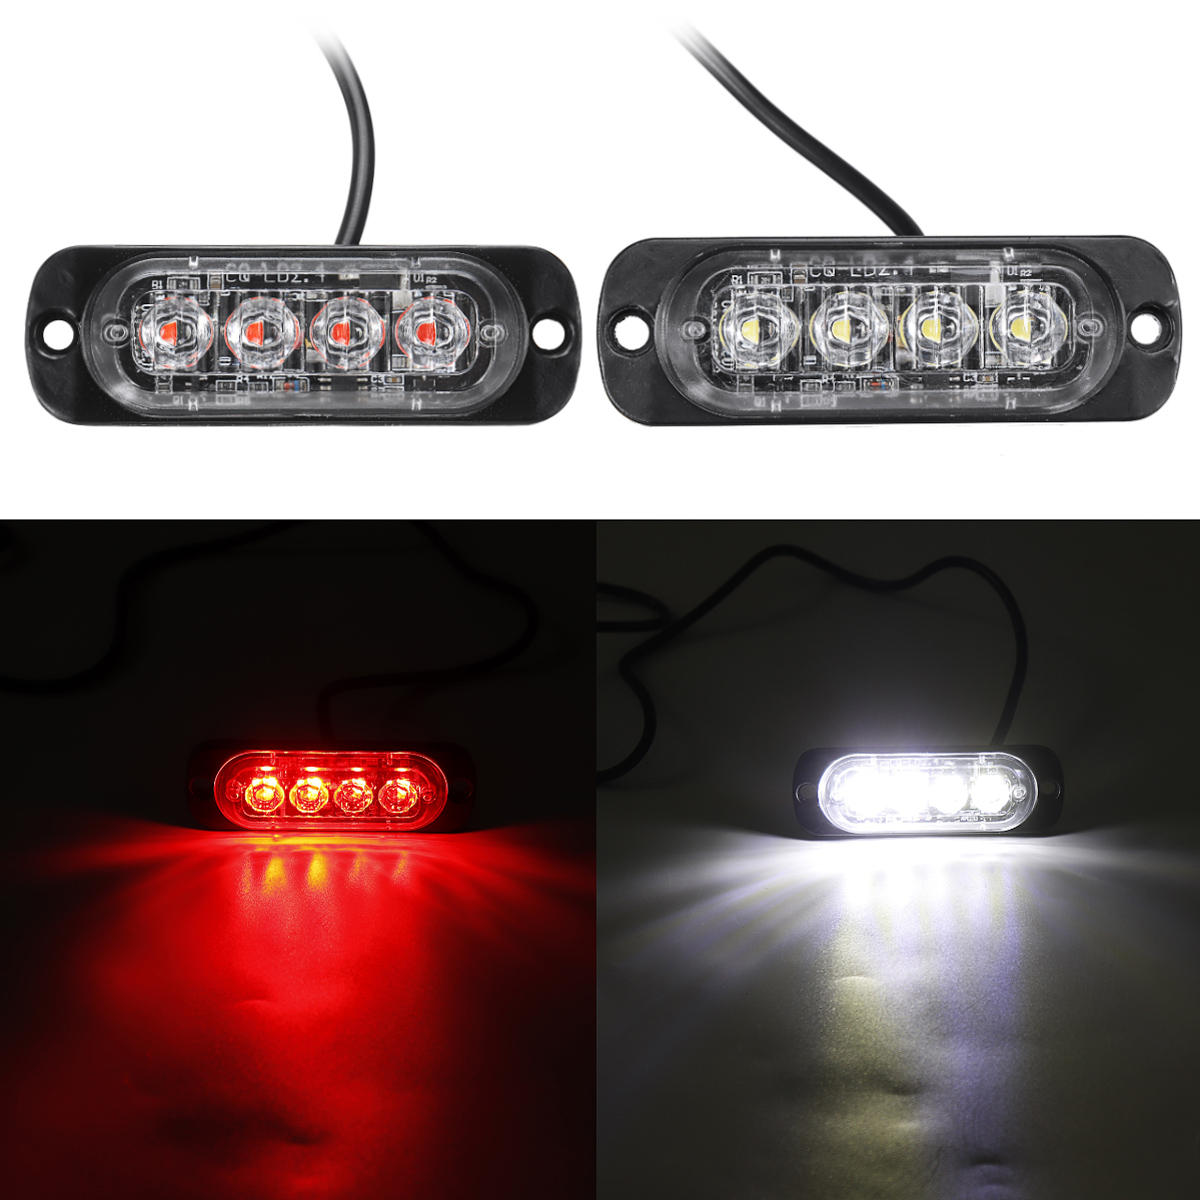 LED Flash Strobe Warning Light Emergency Lamp Red/White 12/24V For Car Truck Motorcycle